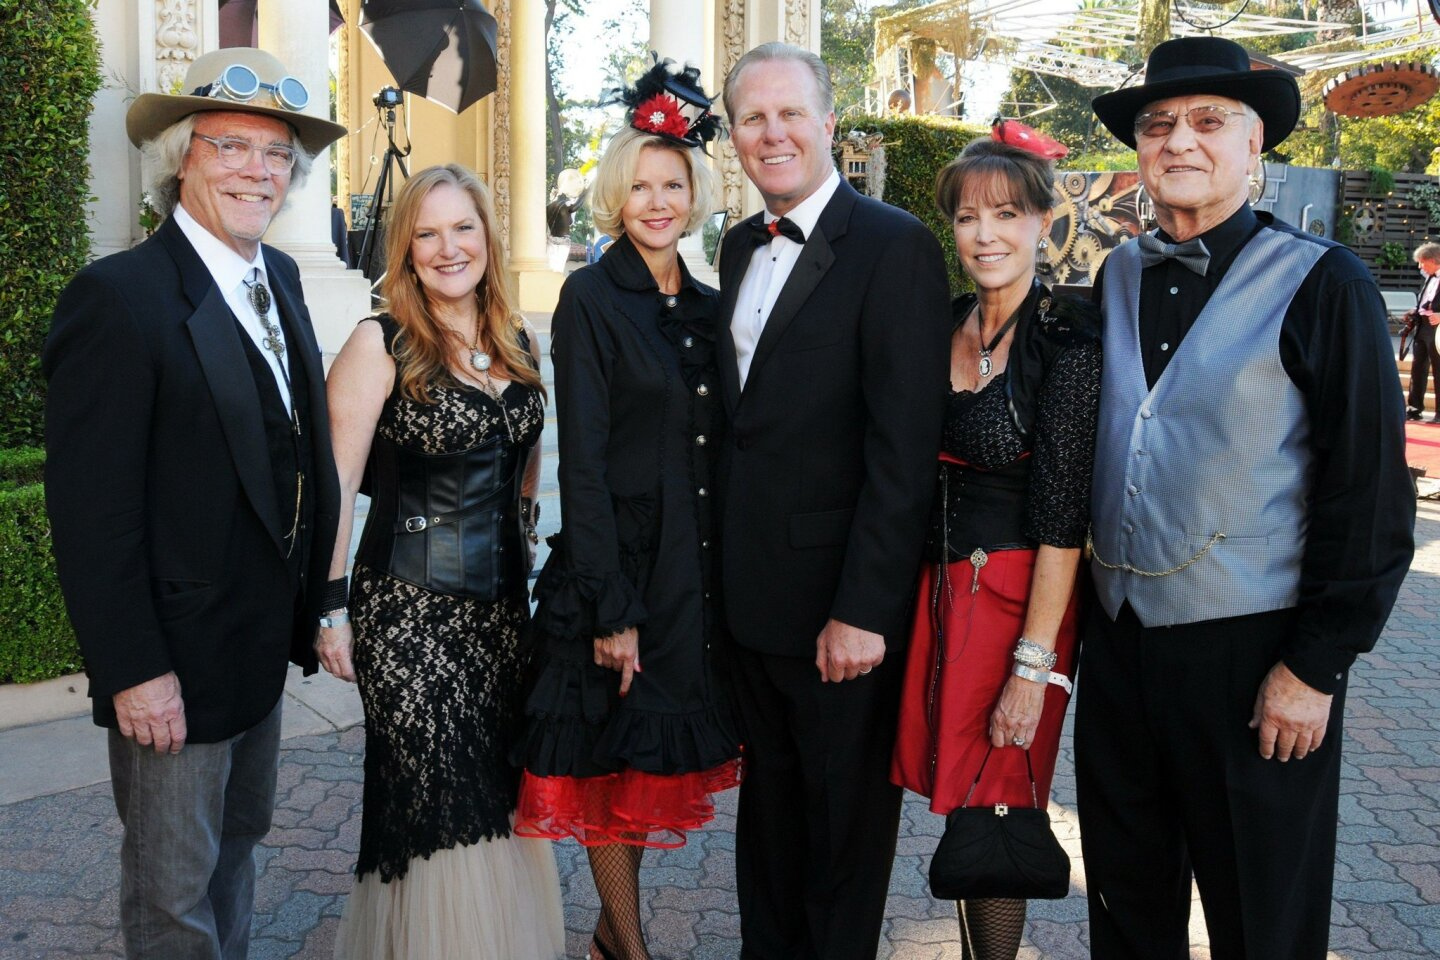 19th annual Masterpiece Gala: Full Steam Ahead